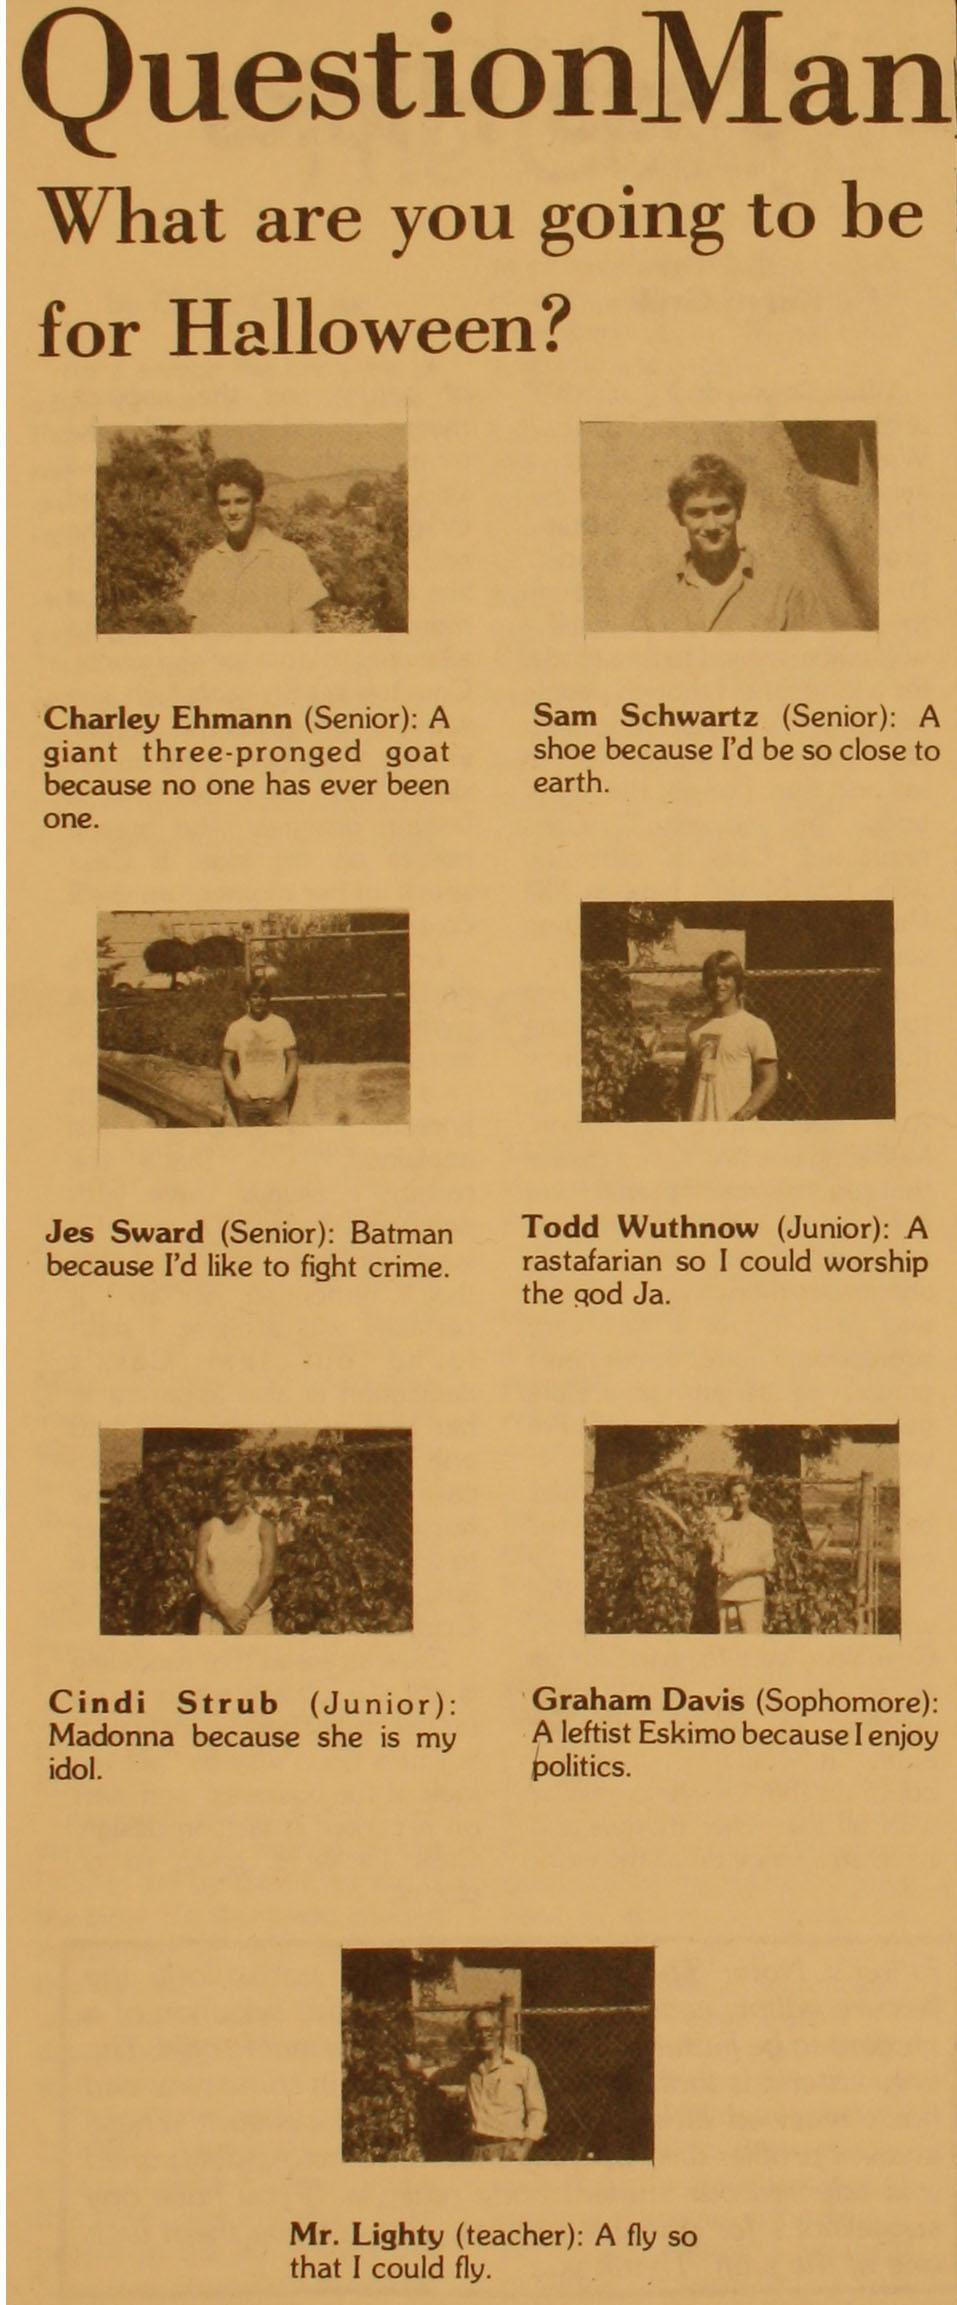 Tam students in 1985 describe their Halloween costumes.